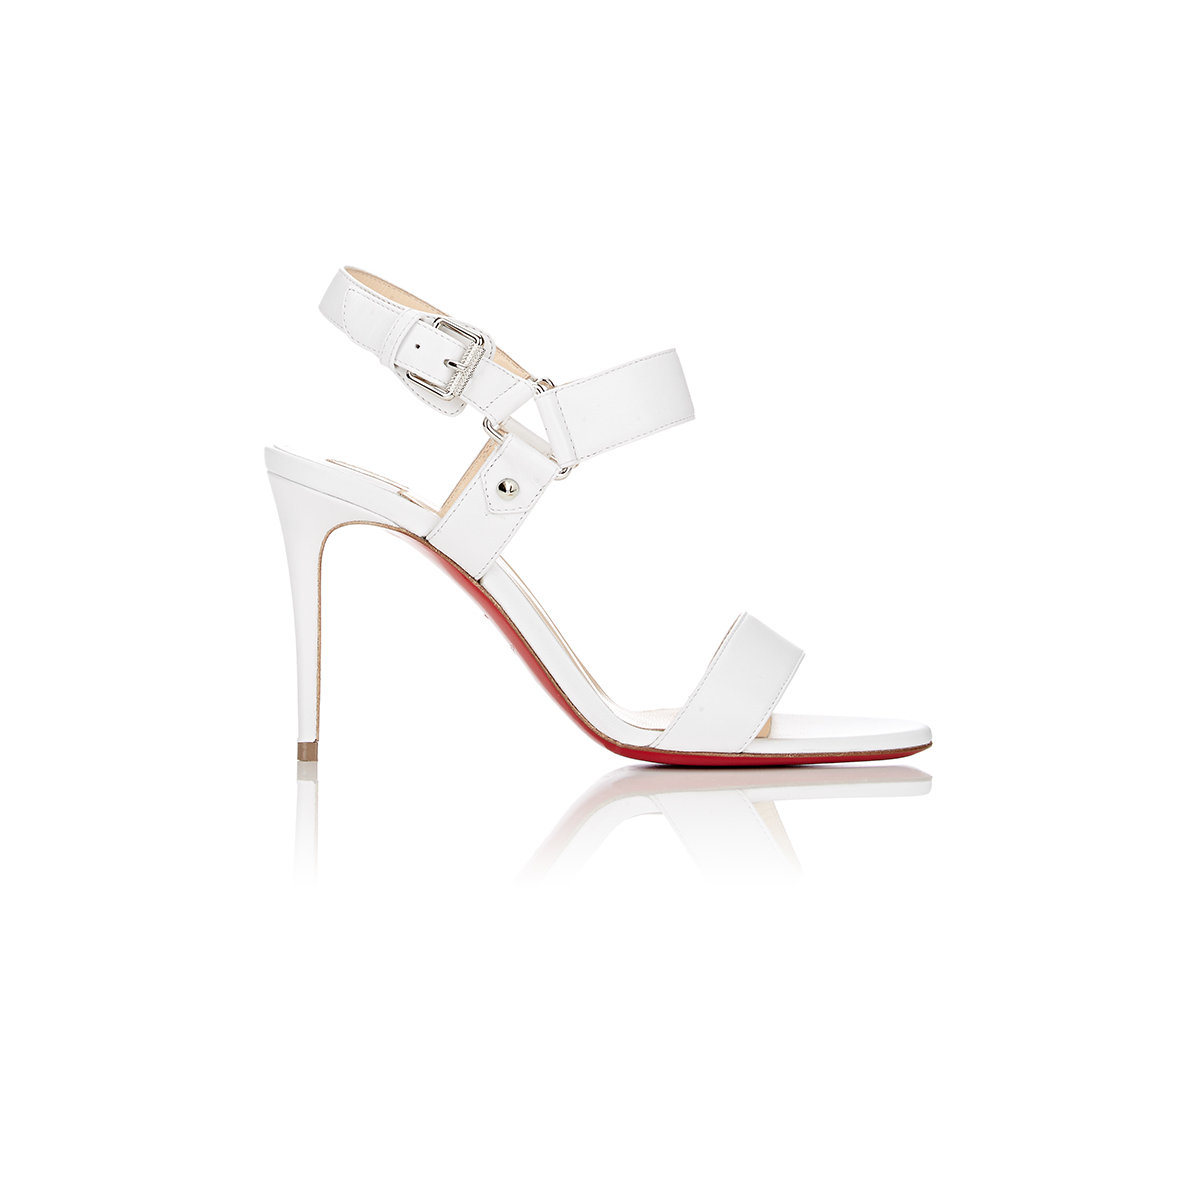 Christian louboutin Sova Buckled Leather Sandals in White   Lyst